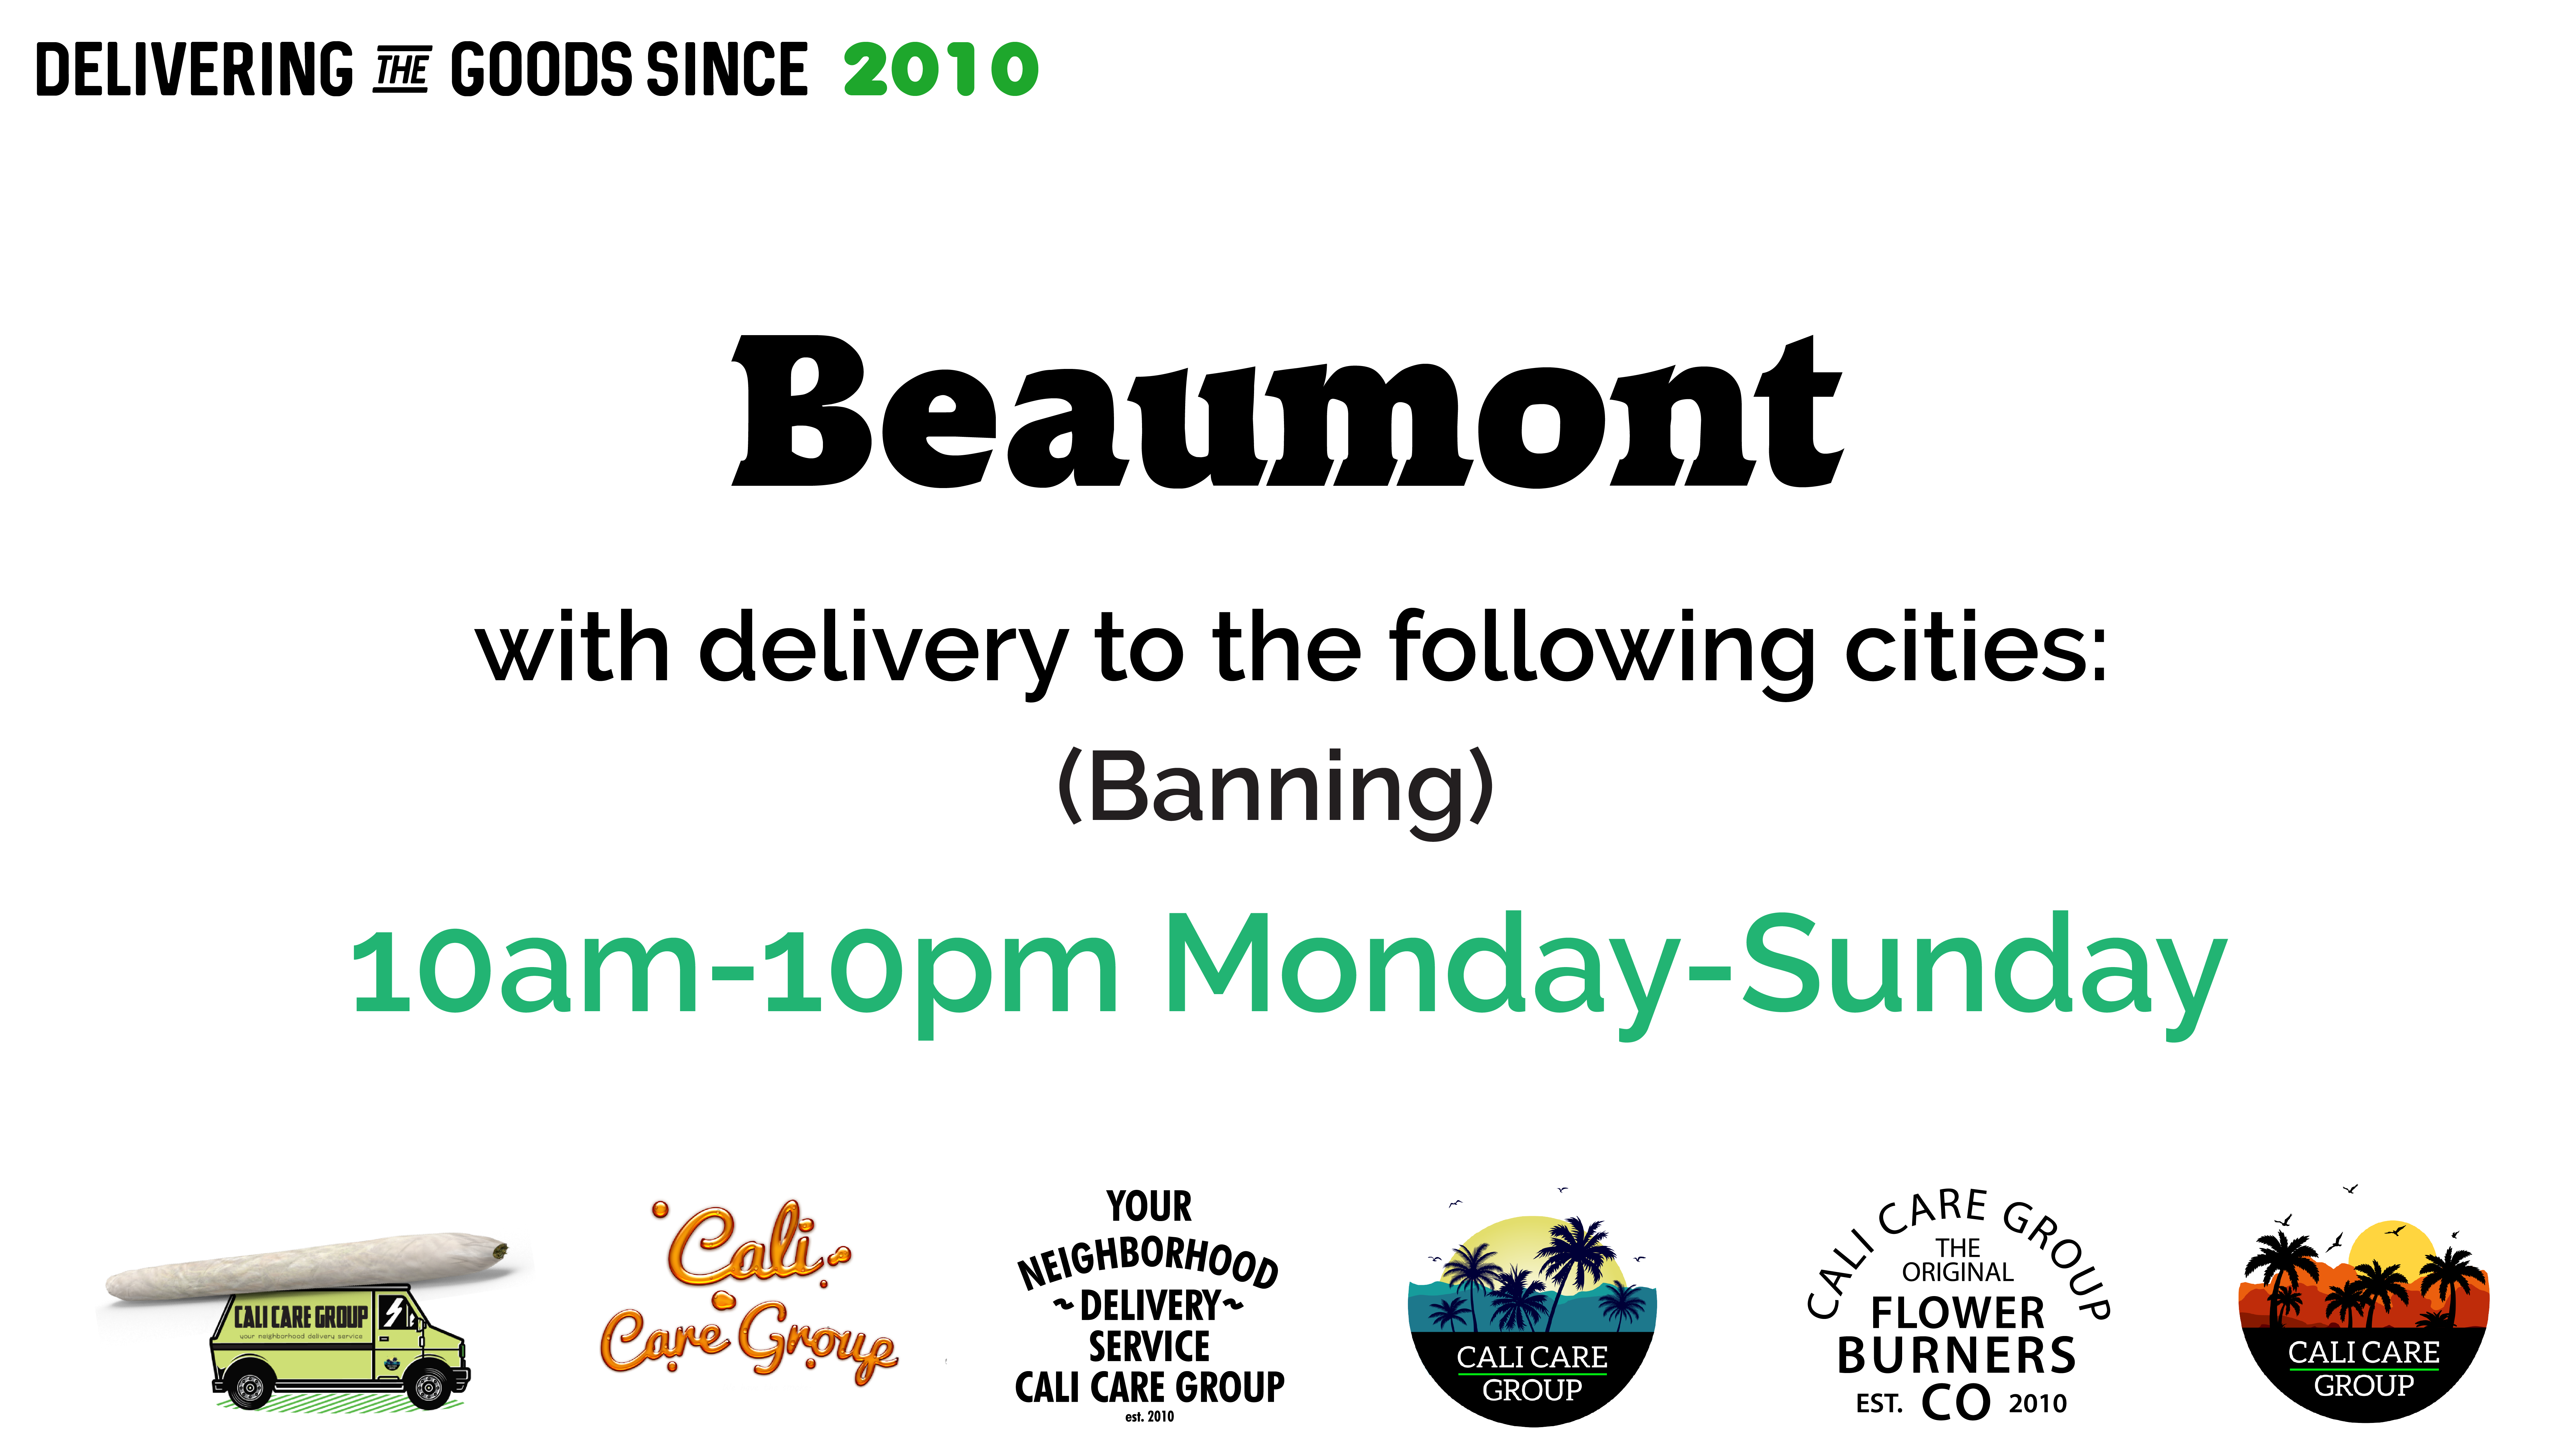 ccg-route-info-beaumont-2.13.21.png